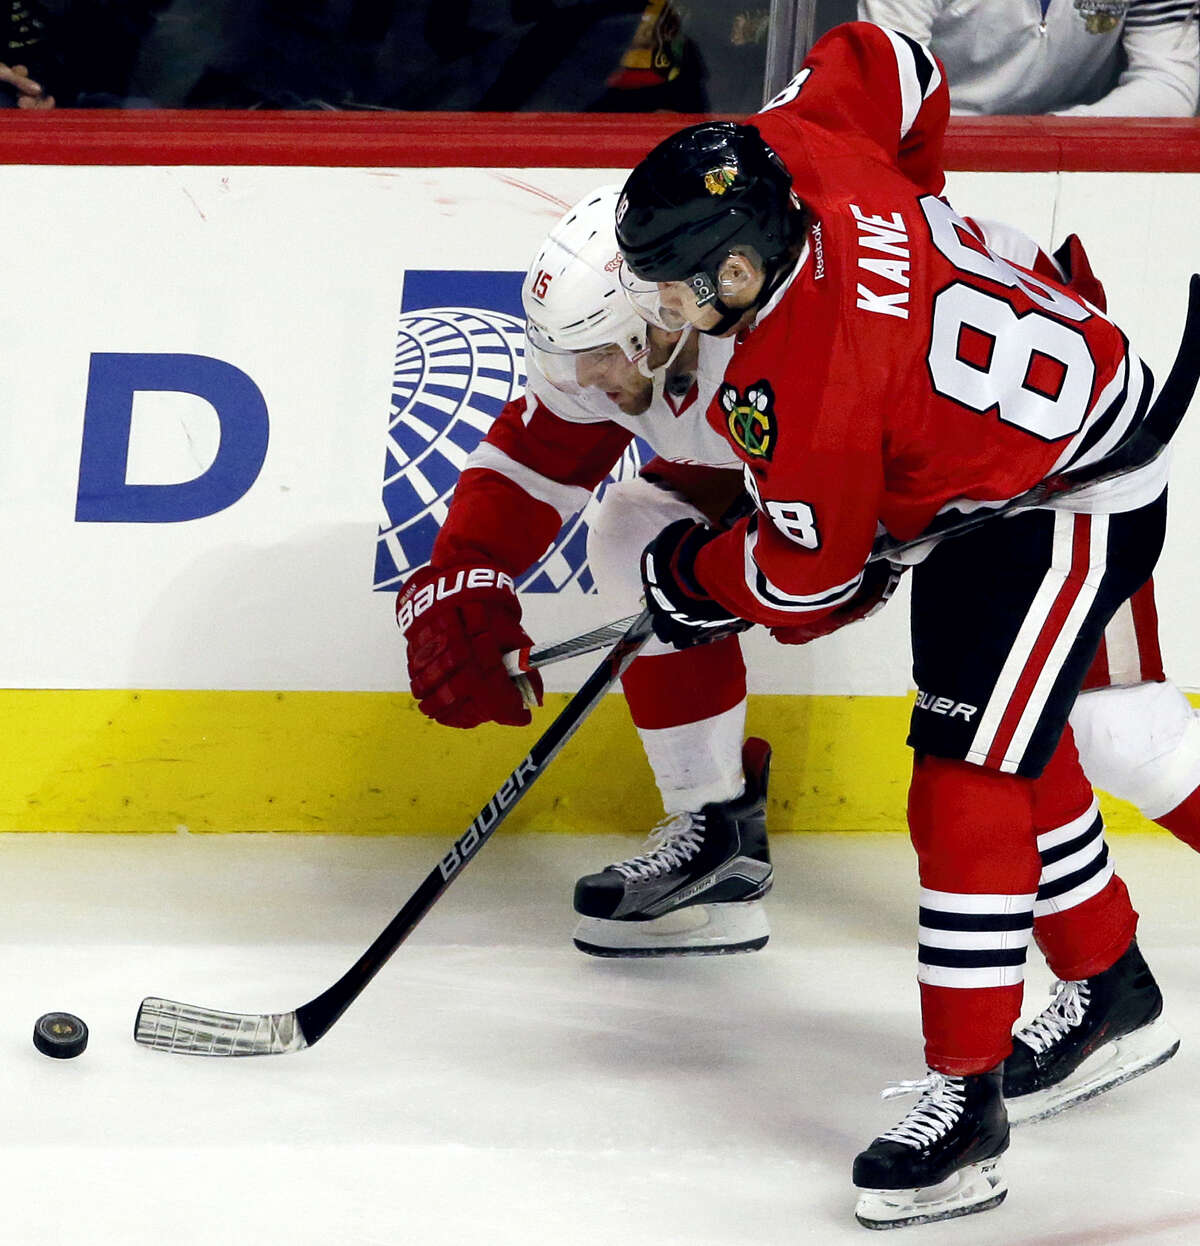 Detroit Red Wings center Riley Sheahan, left, and Chicago Blackhawks right wing Patrick Kane battle for the puck during the second period of an NHL hockey game Sunday, March 6, 2016, in Chicago. (AP Photo/Nam Y. Huh)